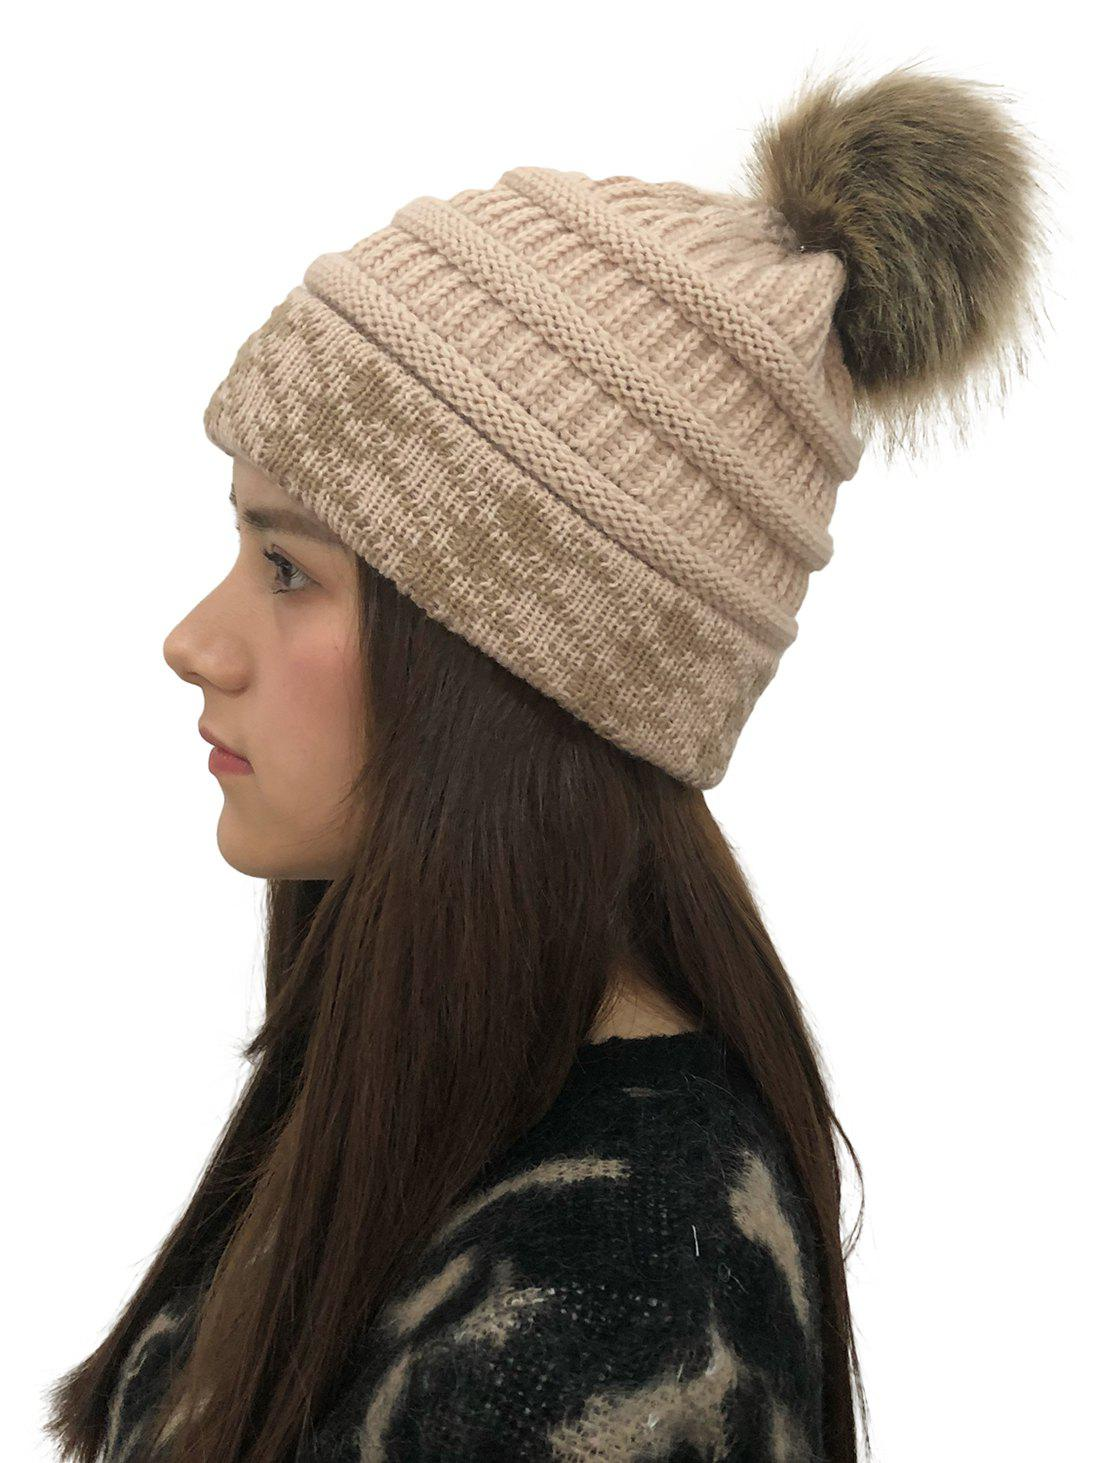 Best Fuzzy Ball Knitted Cap